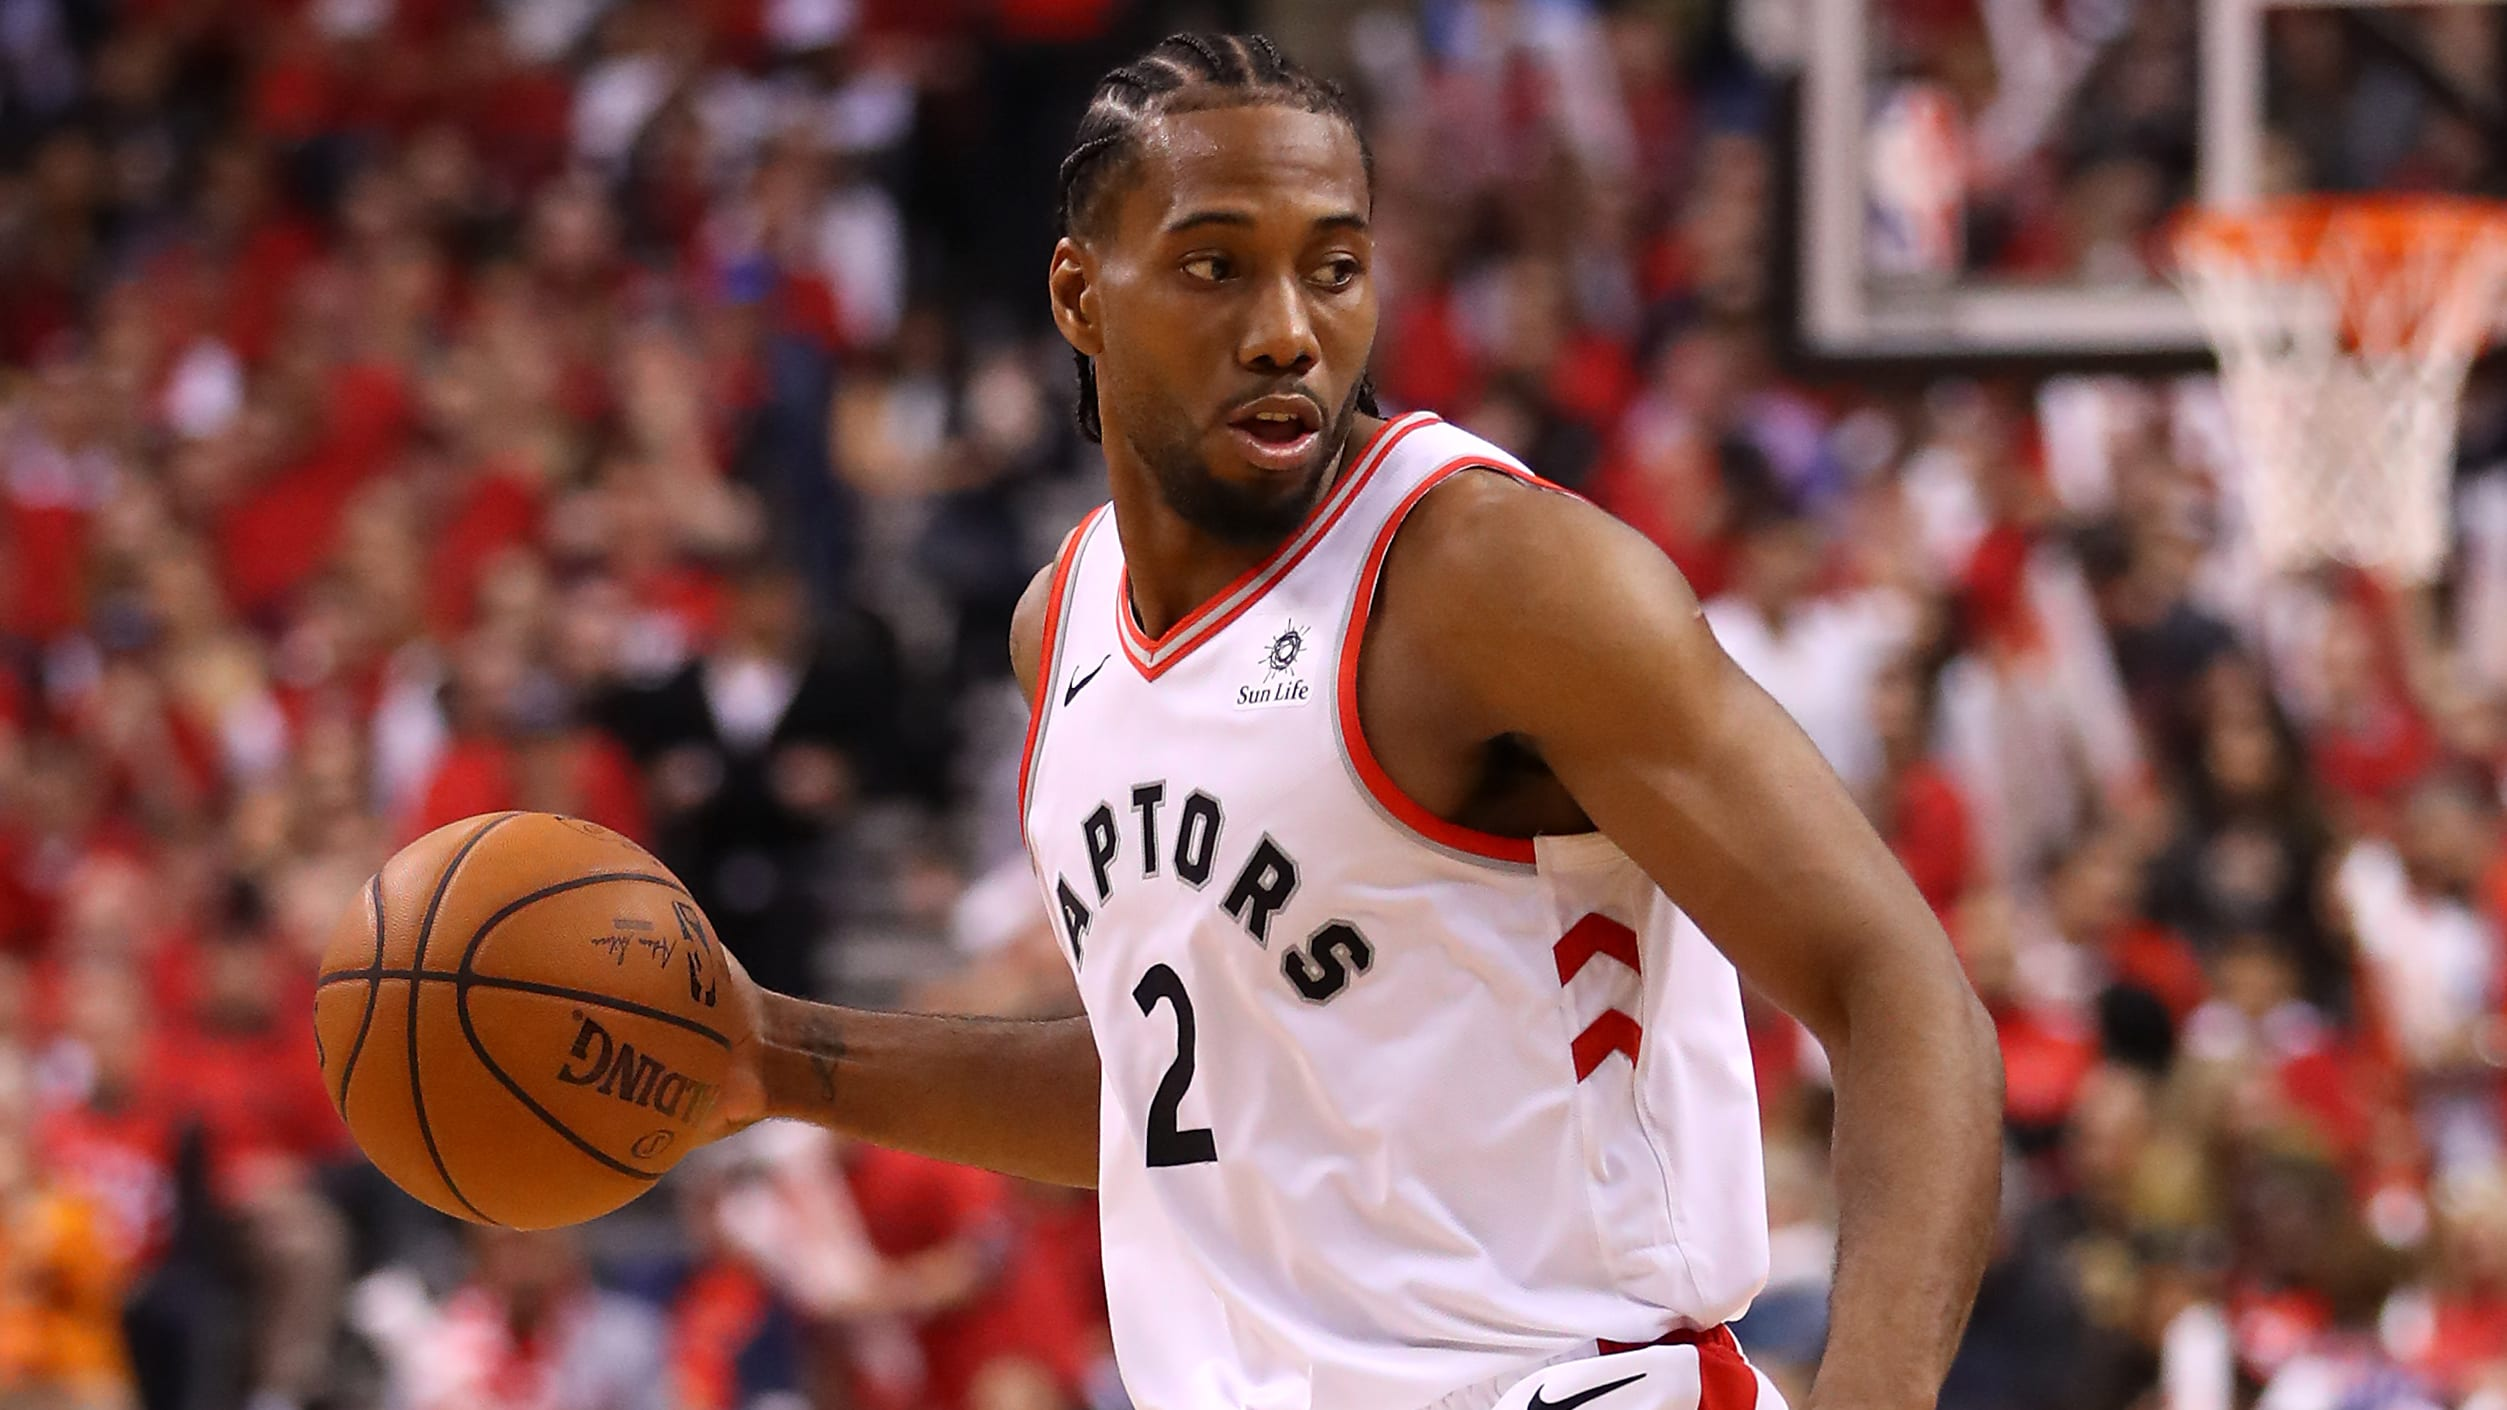 TORONTO, ONTARIO - MAY 19: Kawhi Leonard #2 of the Toronto Raptors handles the ball during the second half against the Milwaukee Bucks in game three of the NBA Eastern Conference Finals at Scotiabank Arena on May 19, 2019 in Toronto, Canada. NOTE TO USER: User expressly acknowledges and agrees that, by downloading and or using this photograph, User is consenting to the terms and conditions of the Getty Images License Agreement. (Photo by Gregory Shamus/Getty Images)